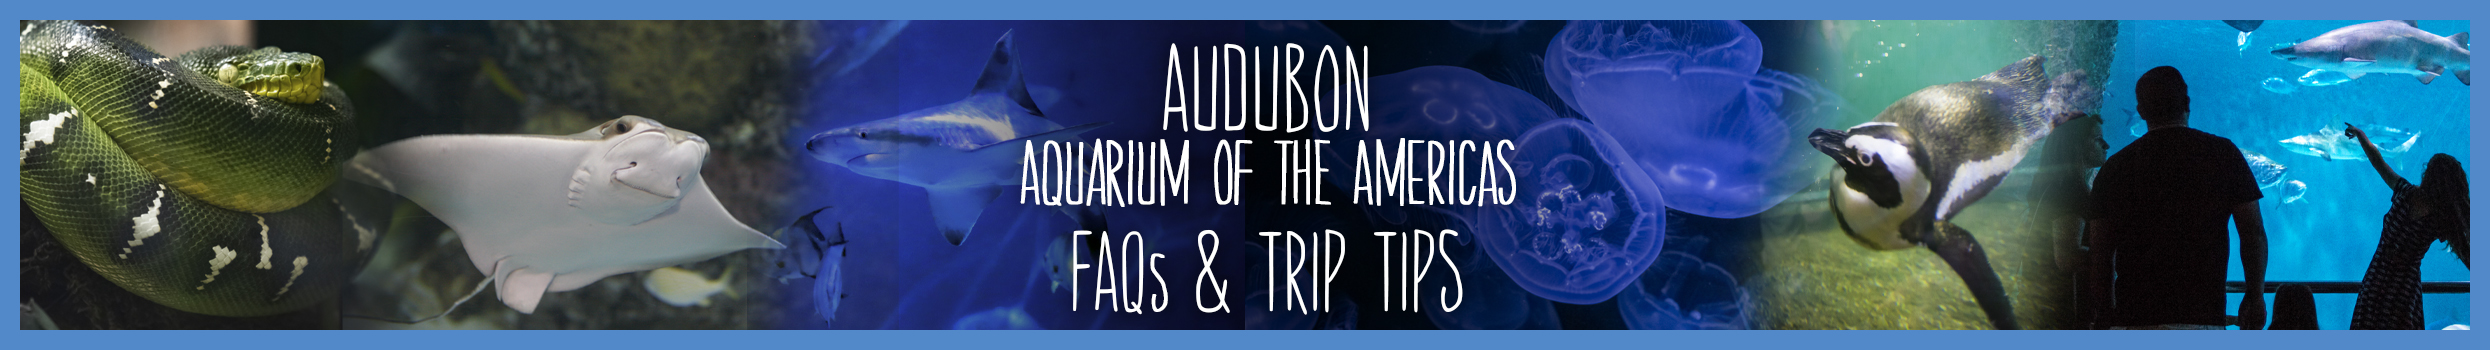 aquarium-faq-header-slider